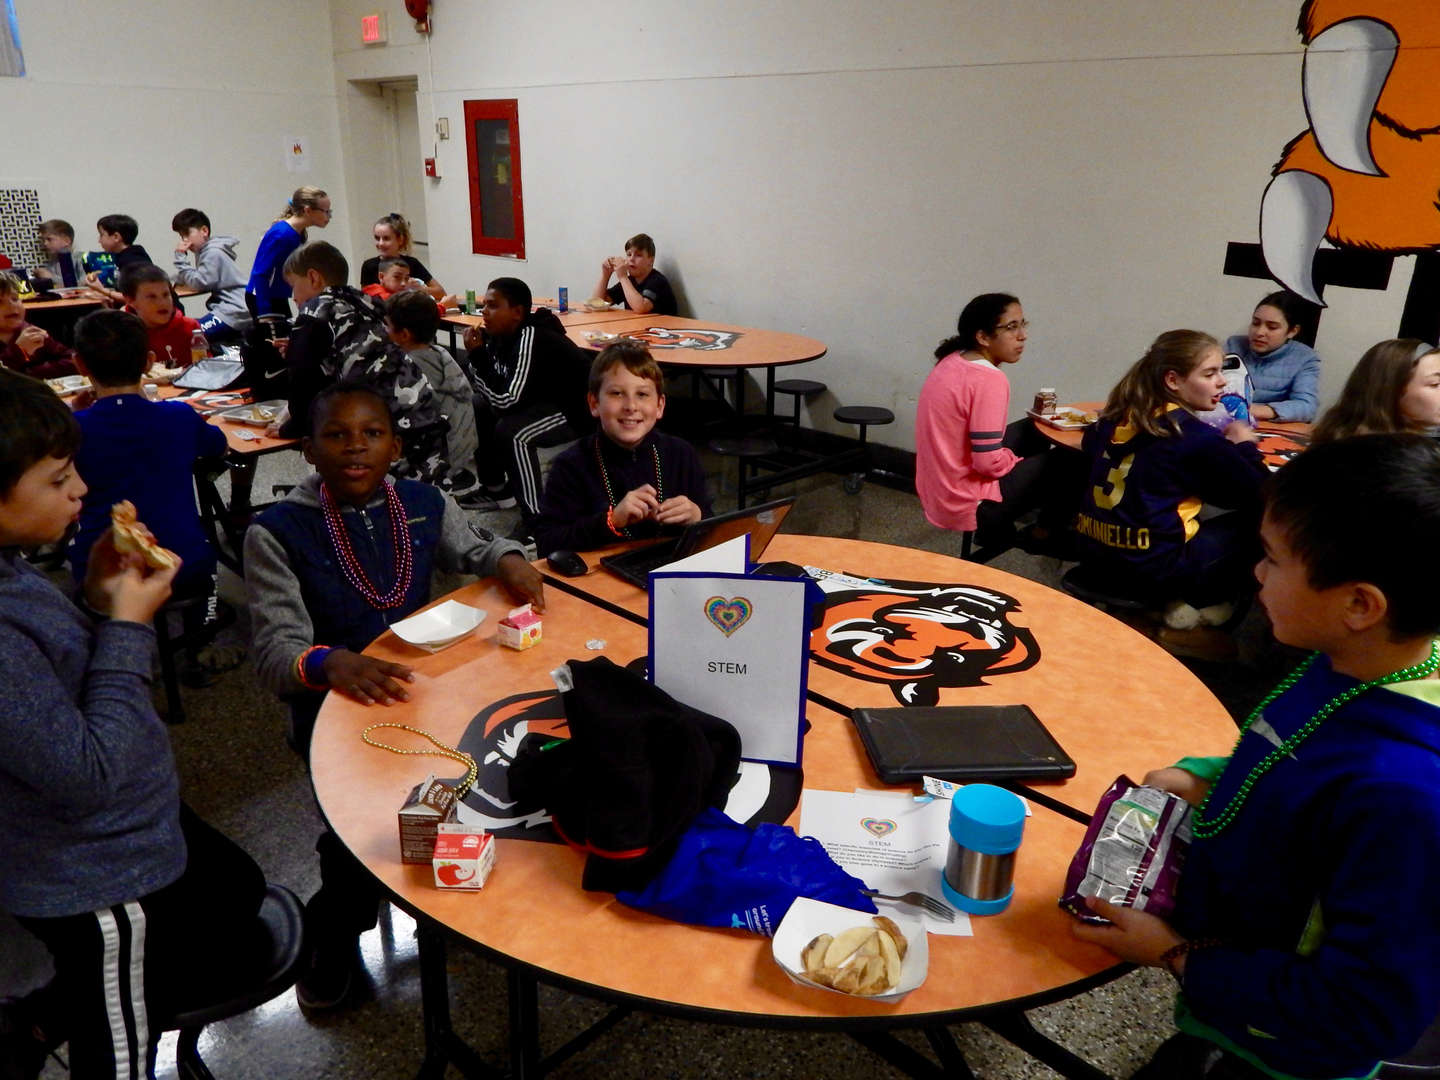 students sitting at a table eating lunch